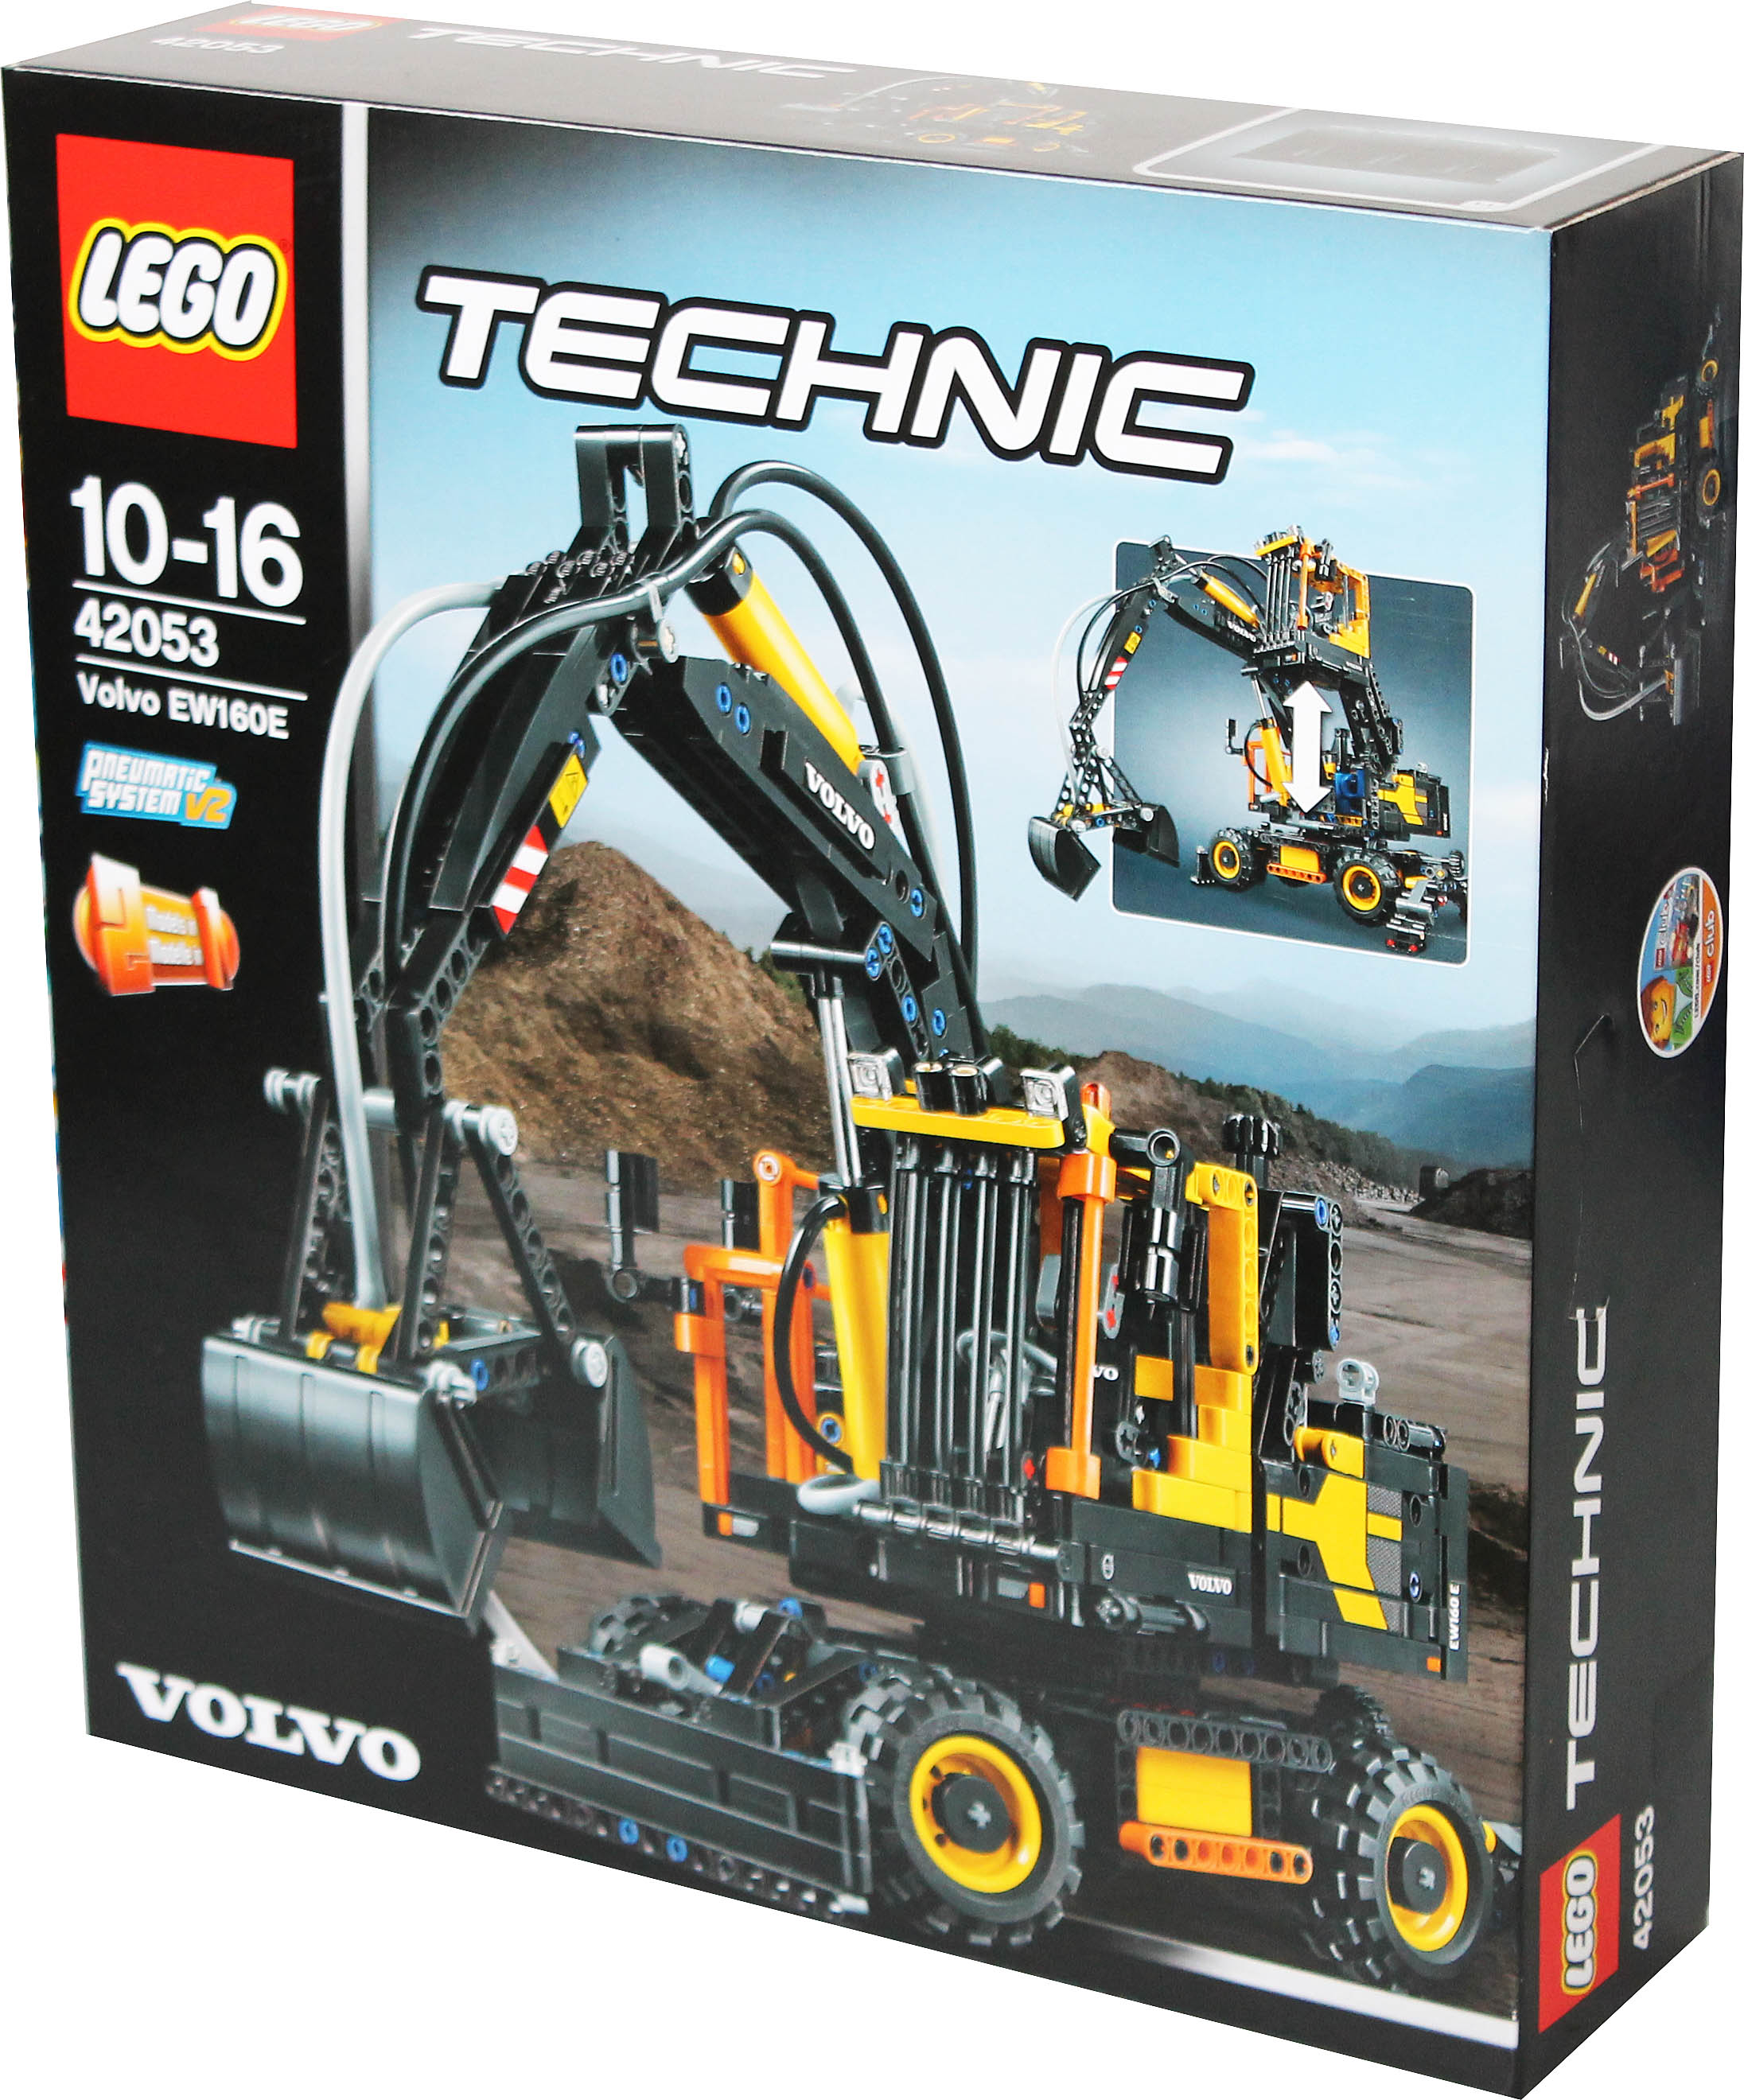 2 in 1 lego technic 42053 volvo ew160e oder l30g bagger. Black Bedroom Furniture Sets. Home Design Ideas